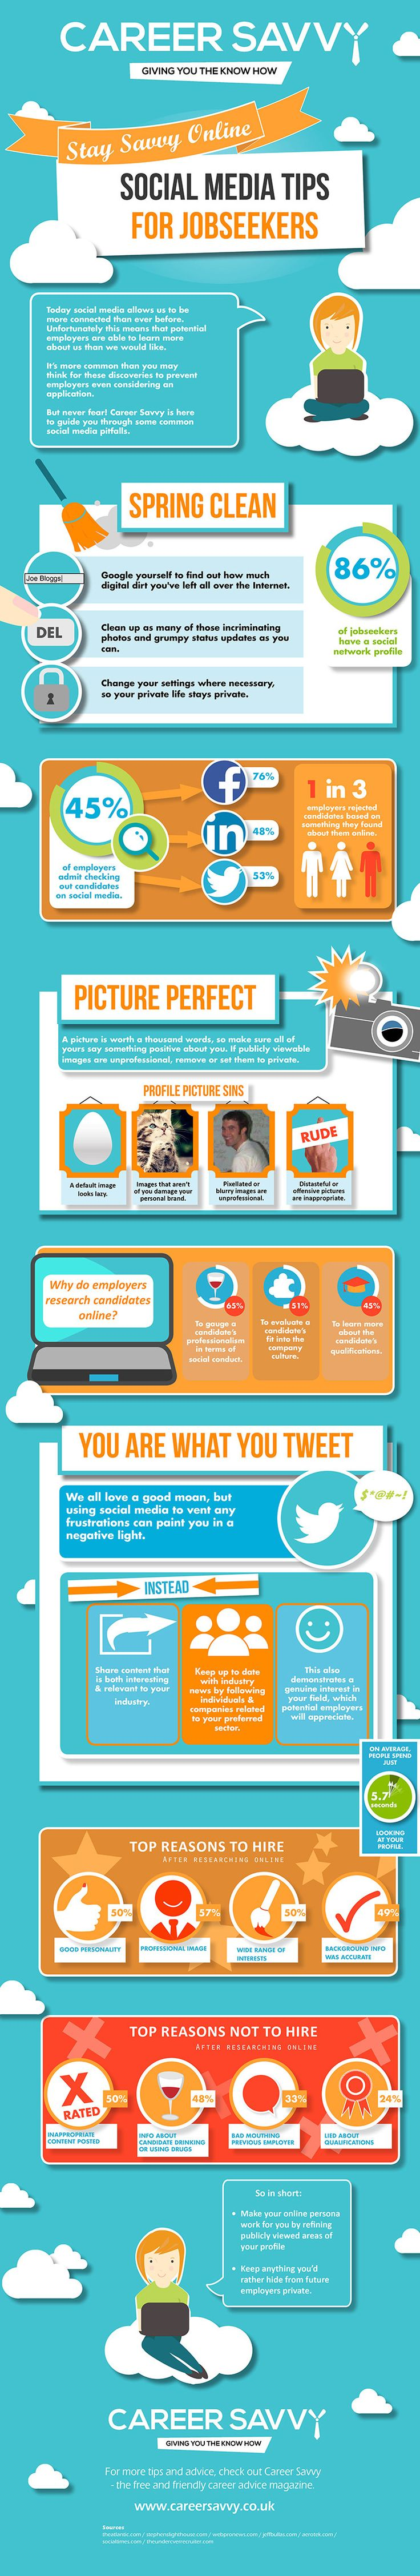 how to clean up your social media during the job search infographic courtesy of career savvy photo of man on computer courtesy of shutterstock